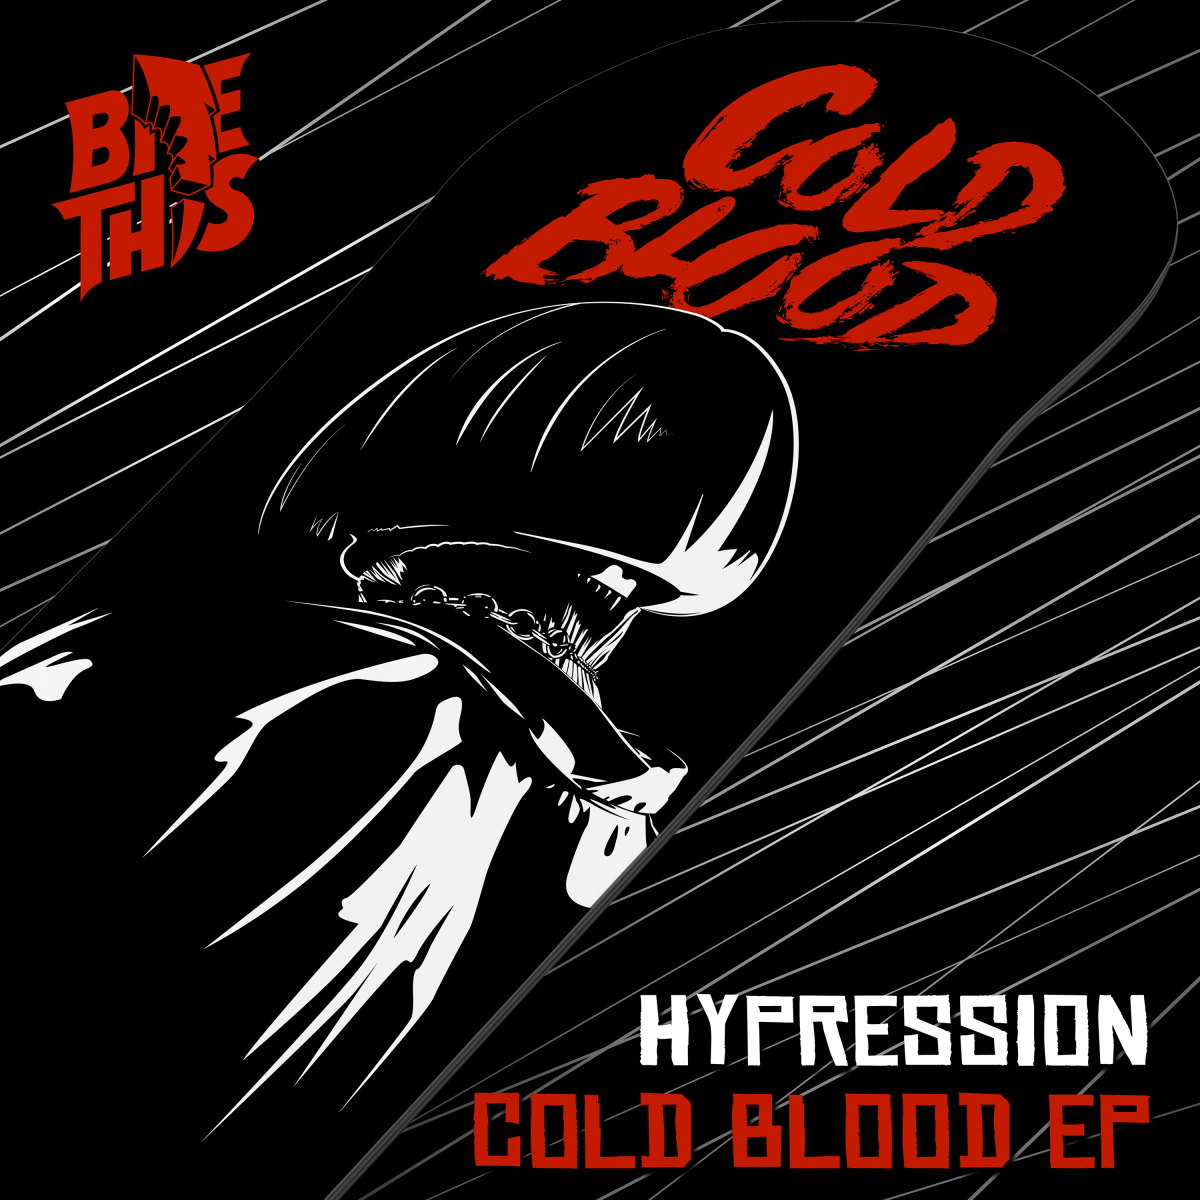 HYPRESSION - Cold Blood EP (Jauz' Bite This! Records)